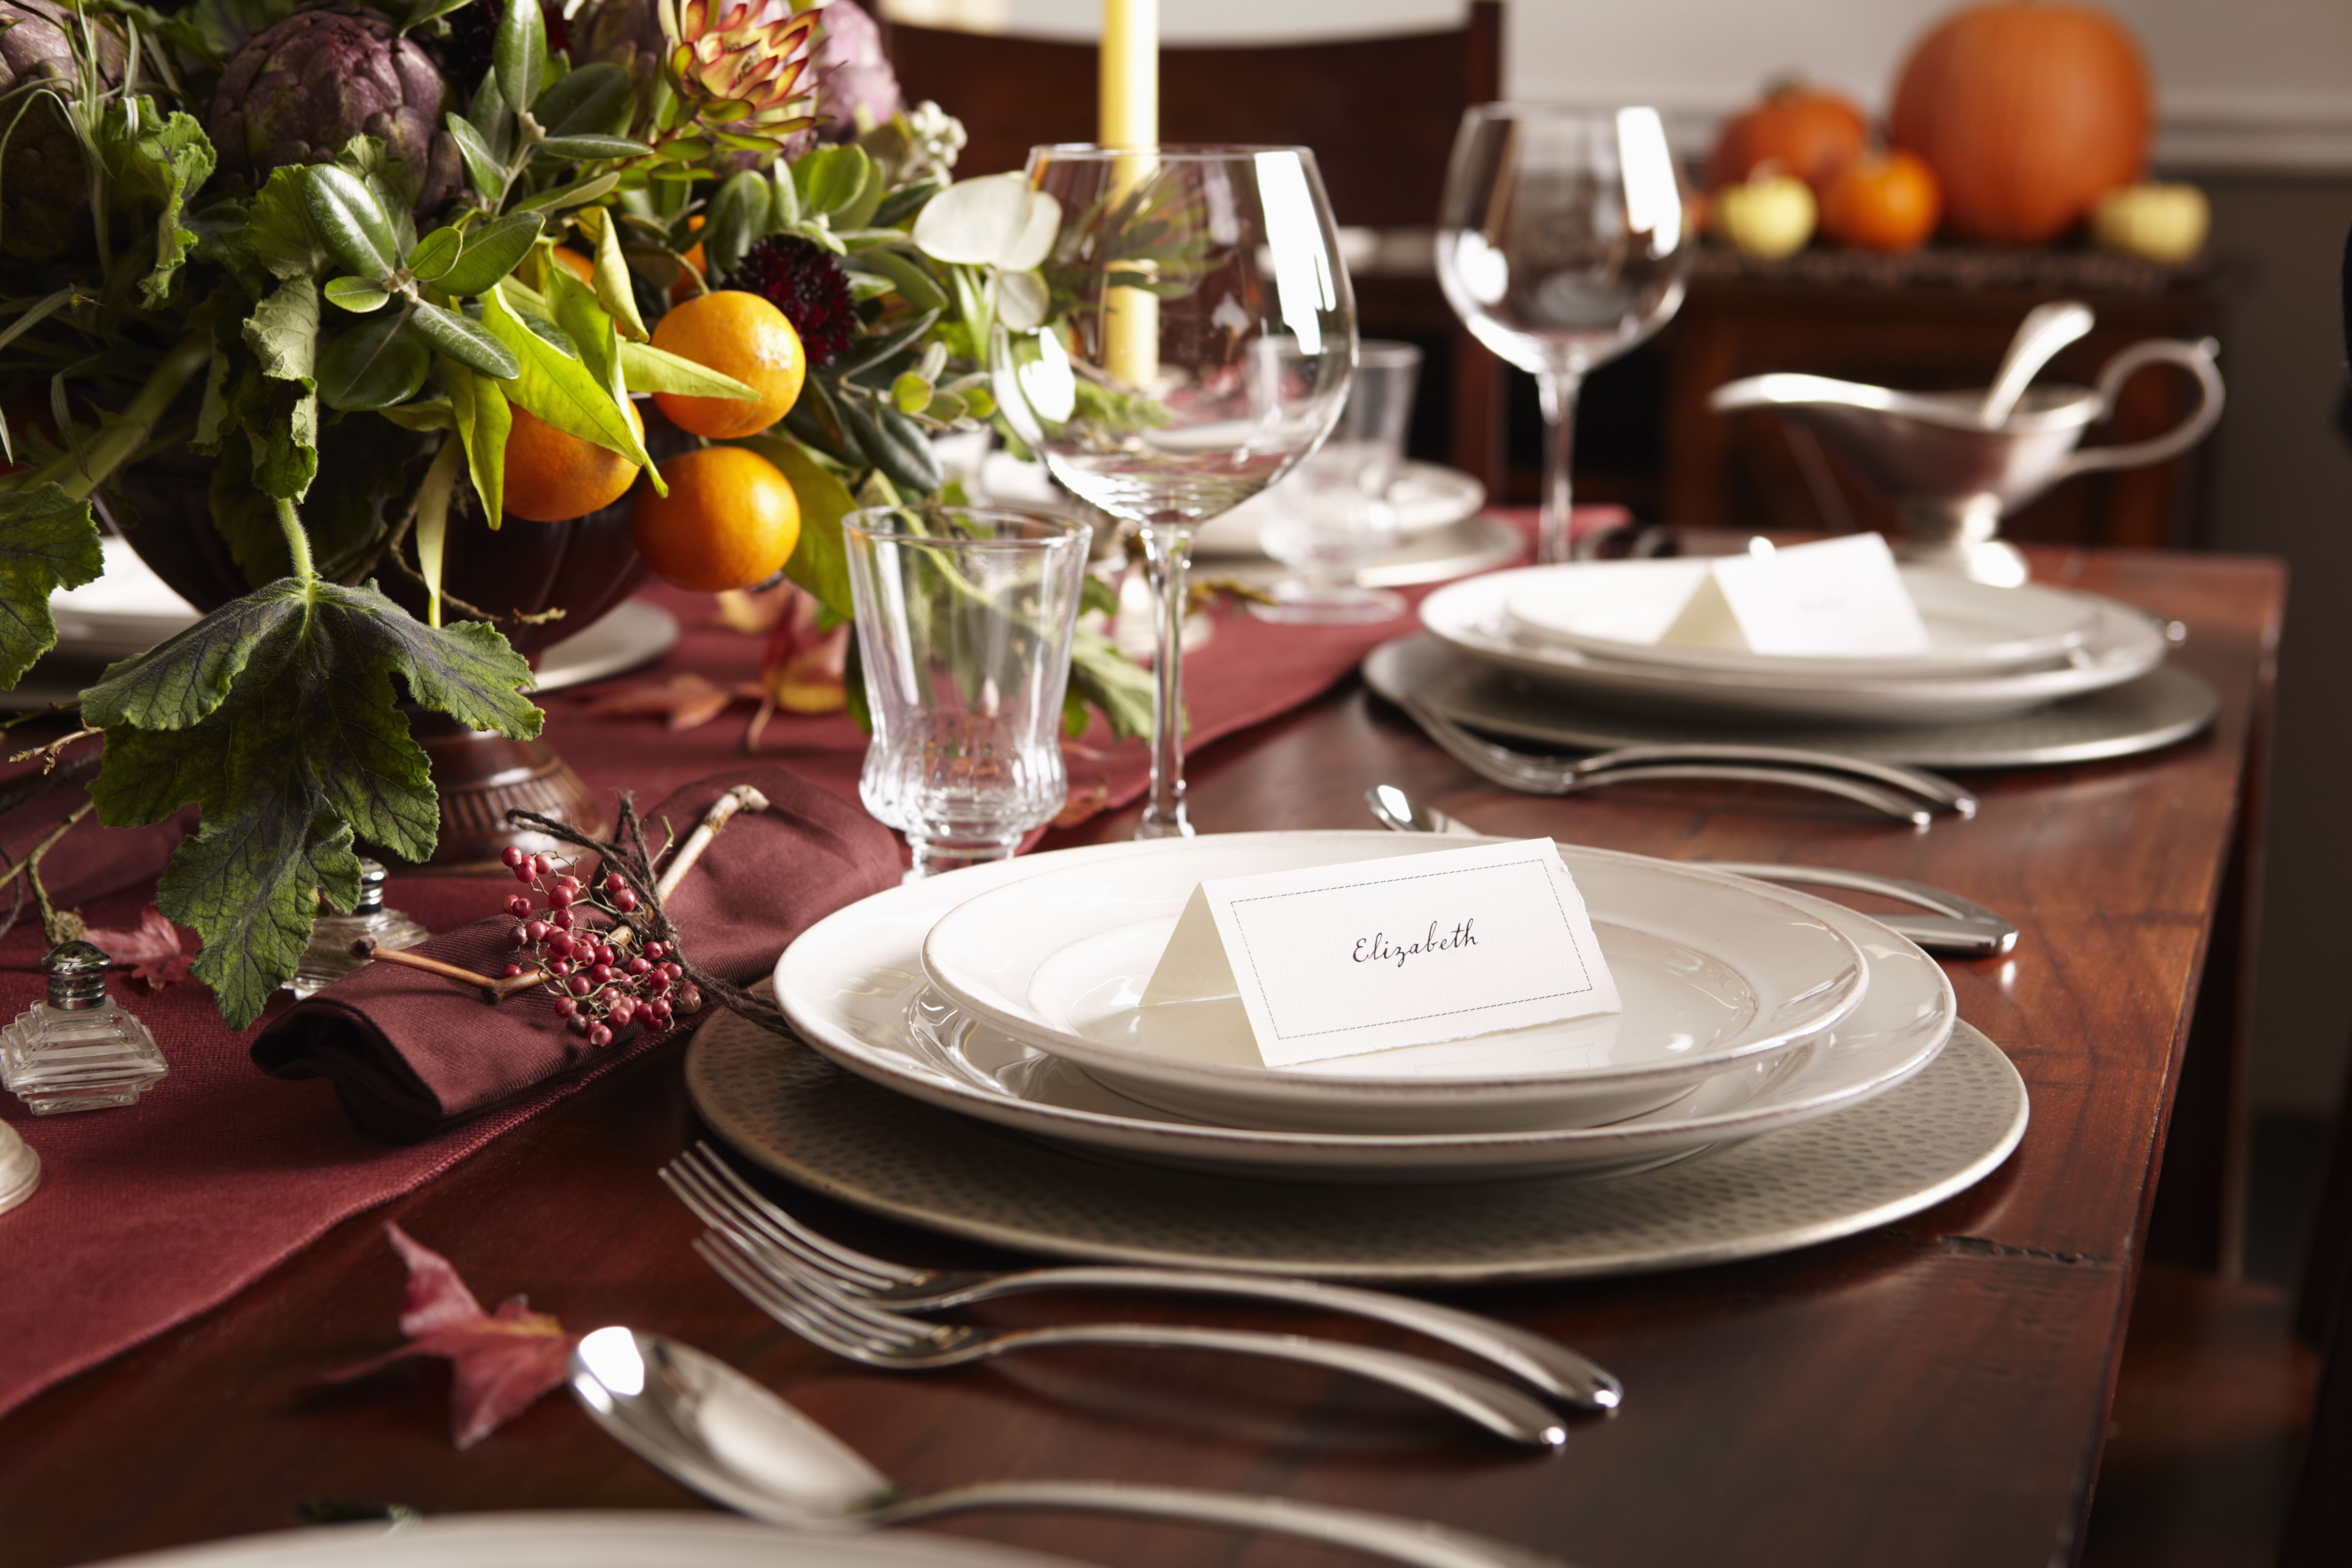 Make Your Thanksgiving Table Look Fantastic With a Free Centerpiece